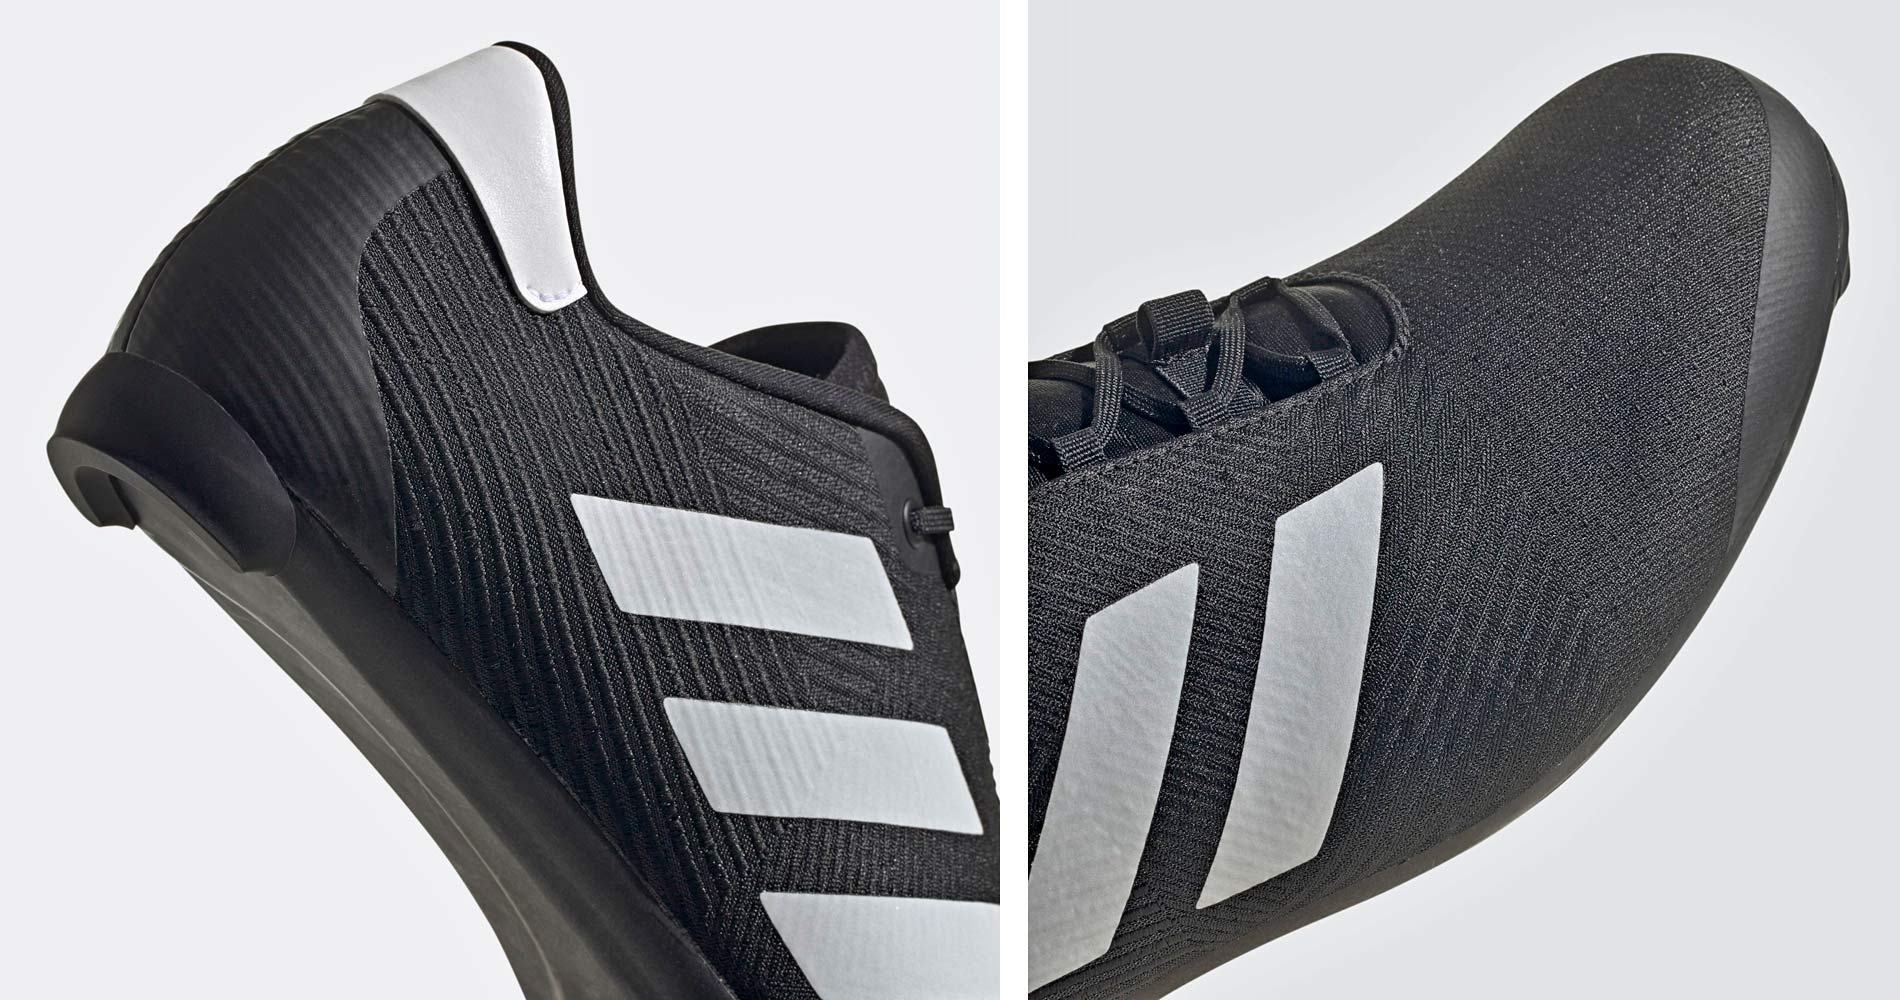 Adidas The Road Cycling Shoes, all-new mid-price lace-up soccer football style road bike shoe,details